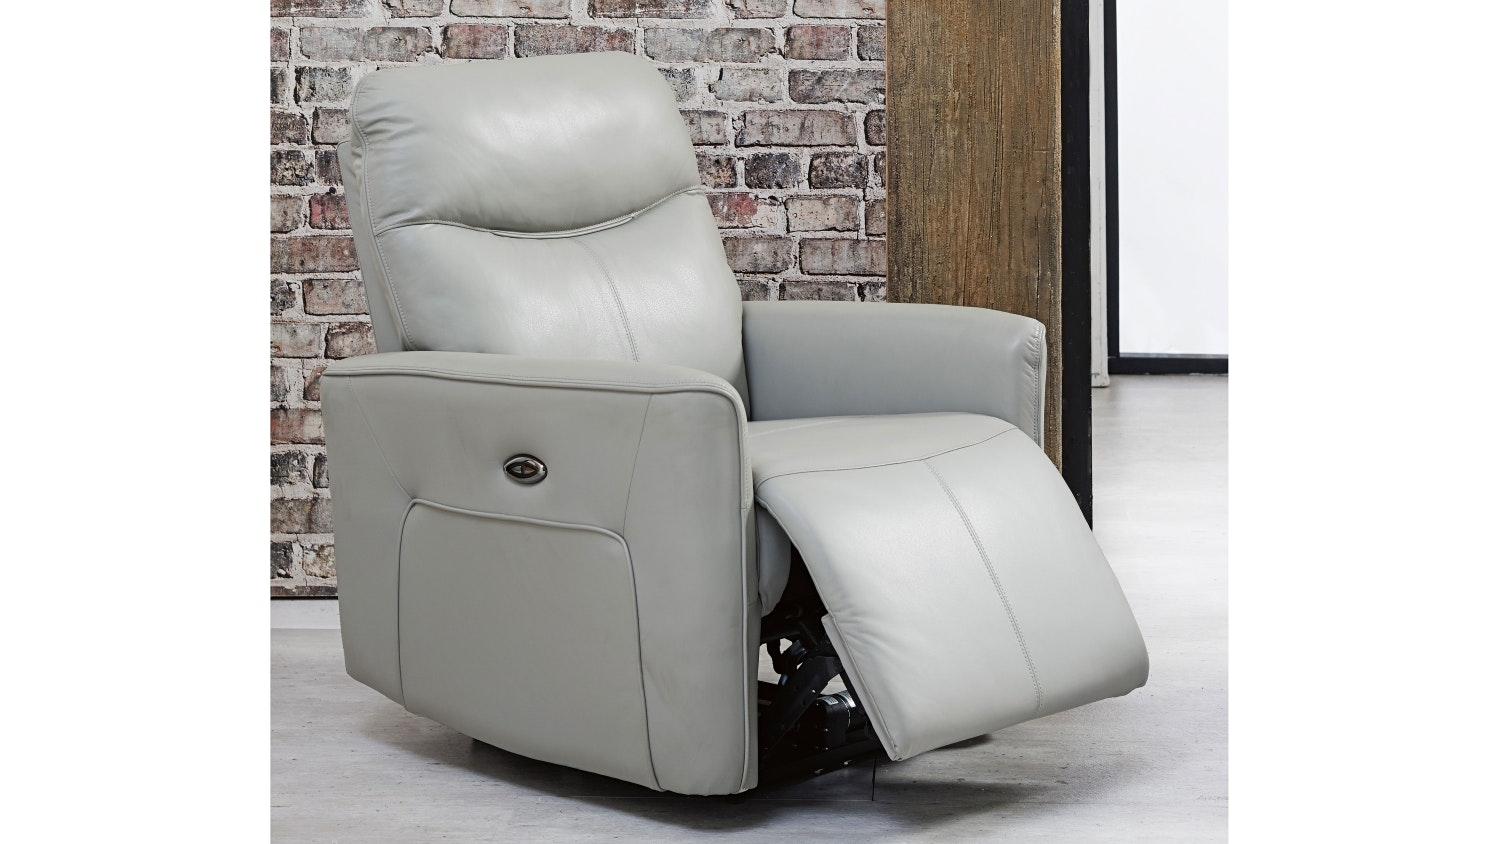 Savoy Leather Electric Recliner